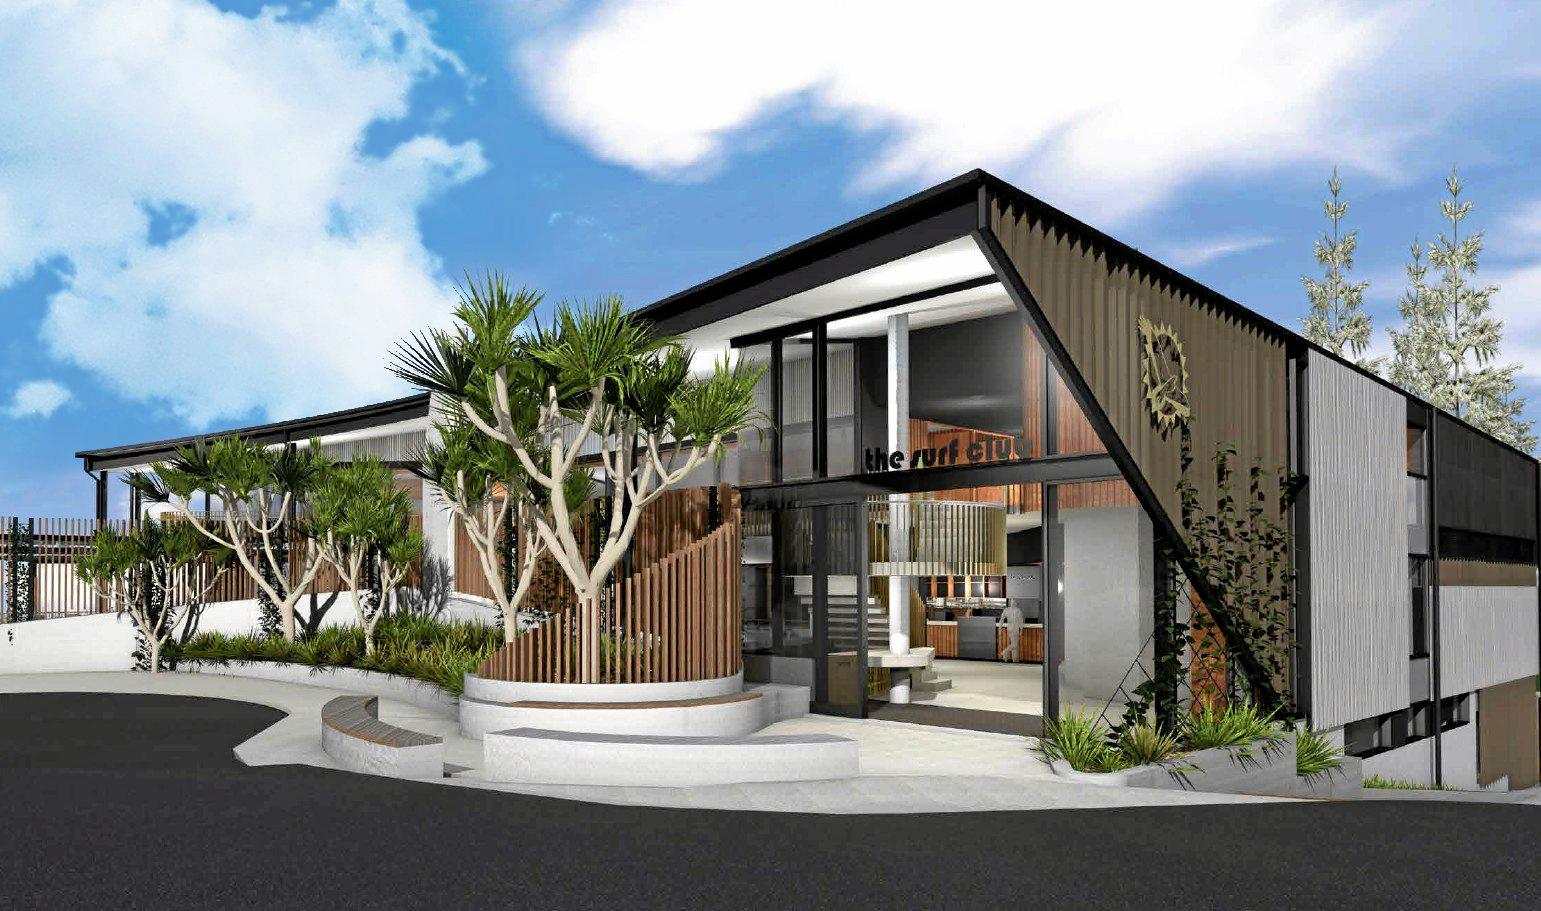 Architect impression of the new Sunshine Beach Surf Club, scheduled to open in November.